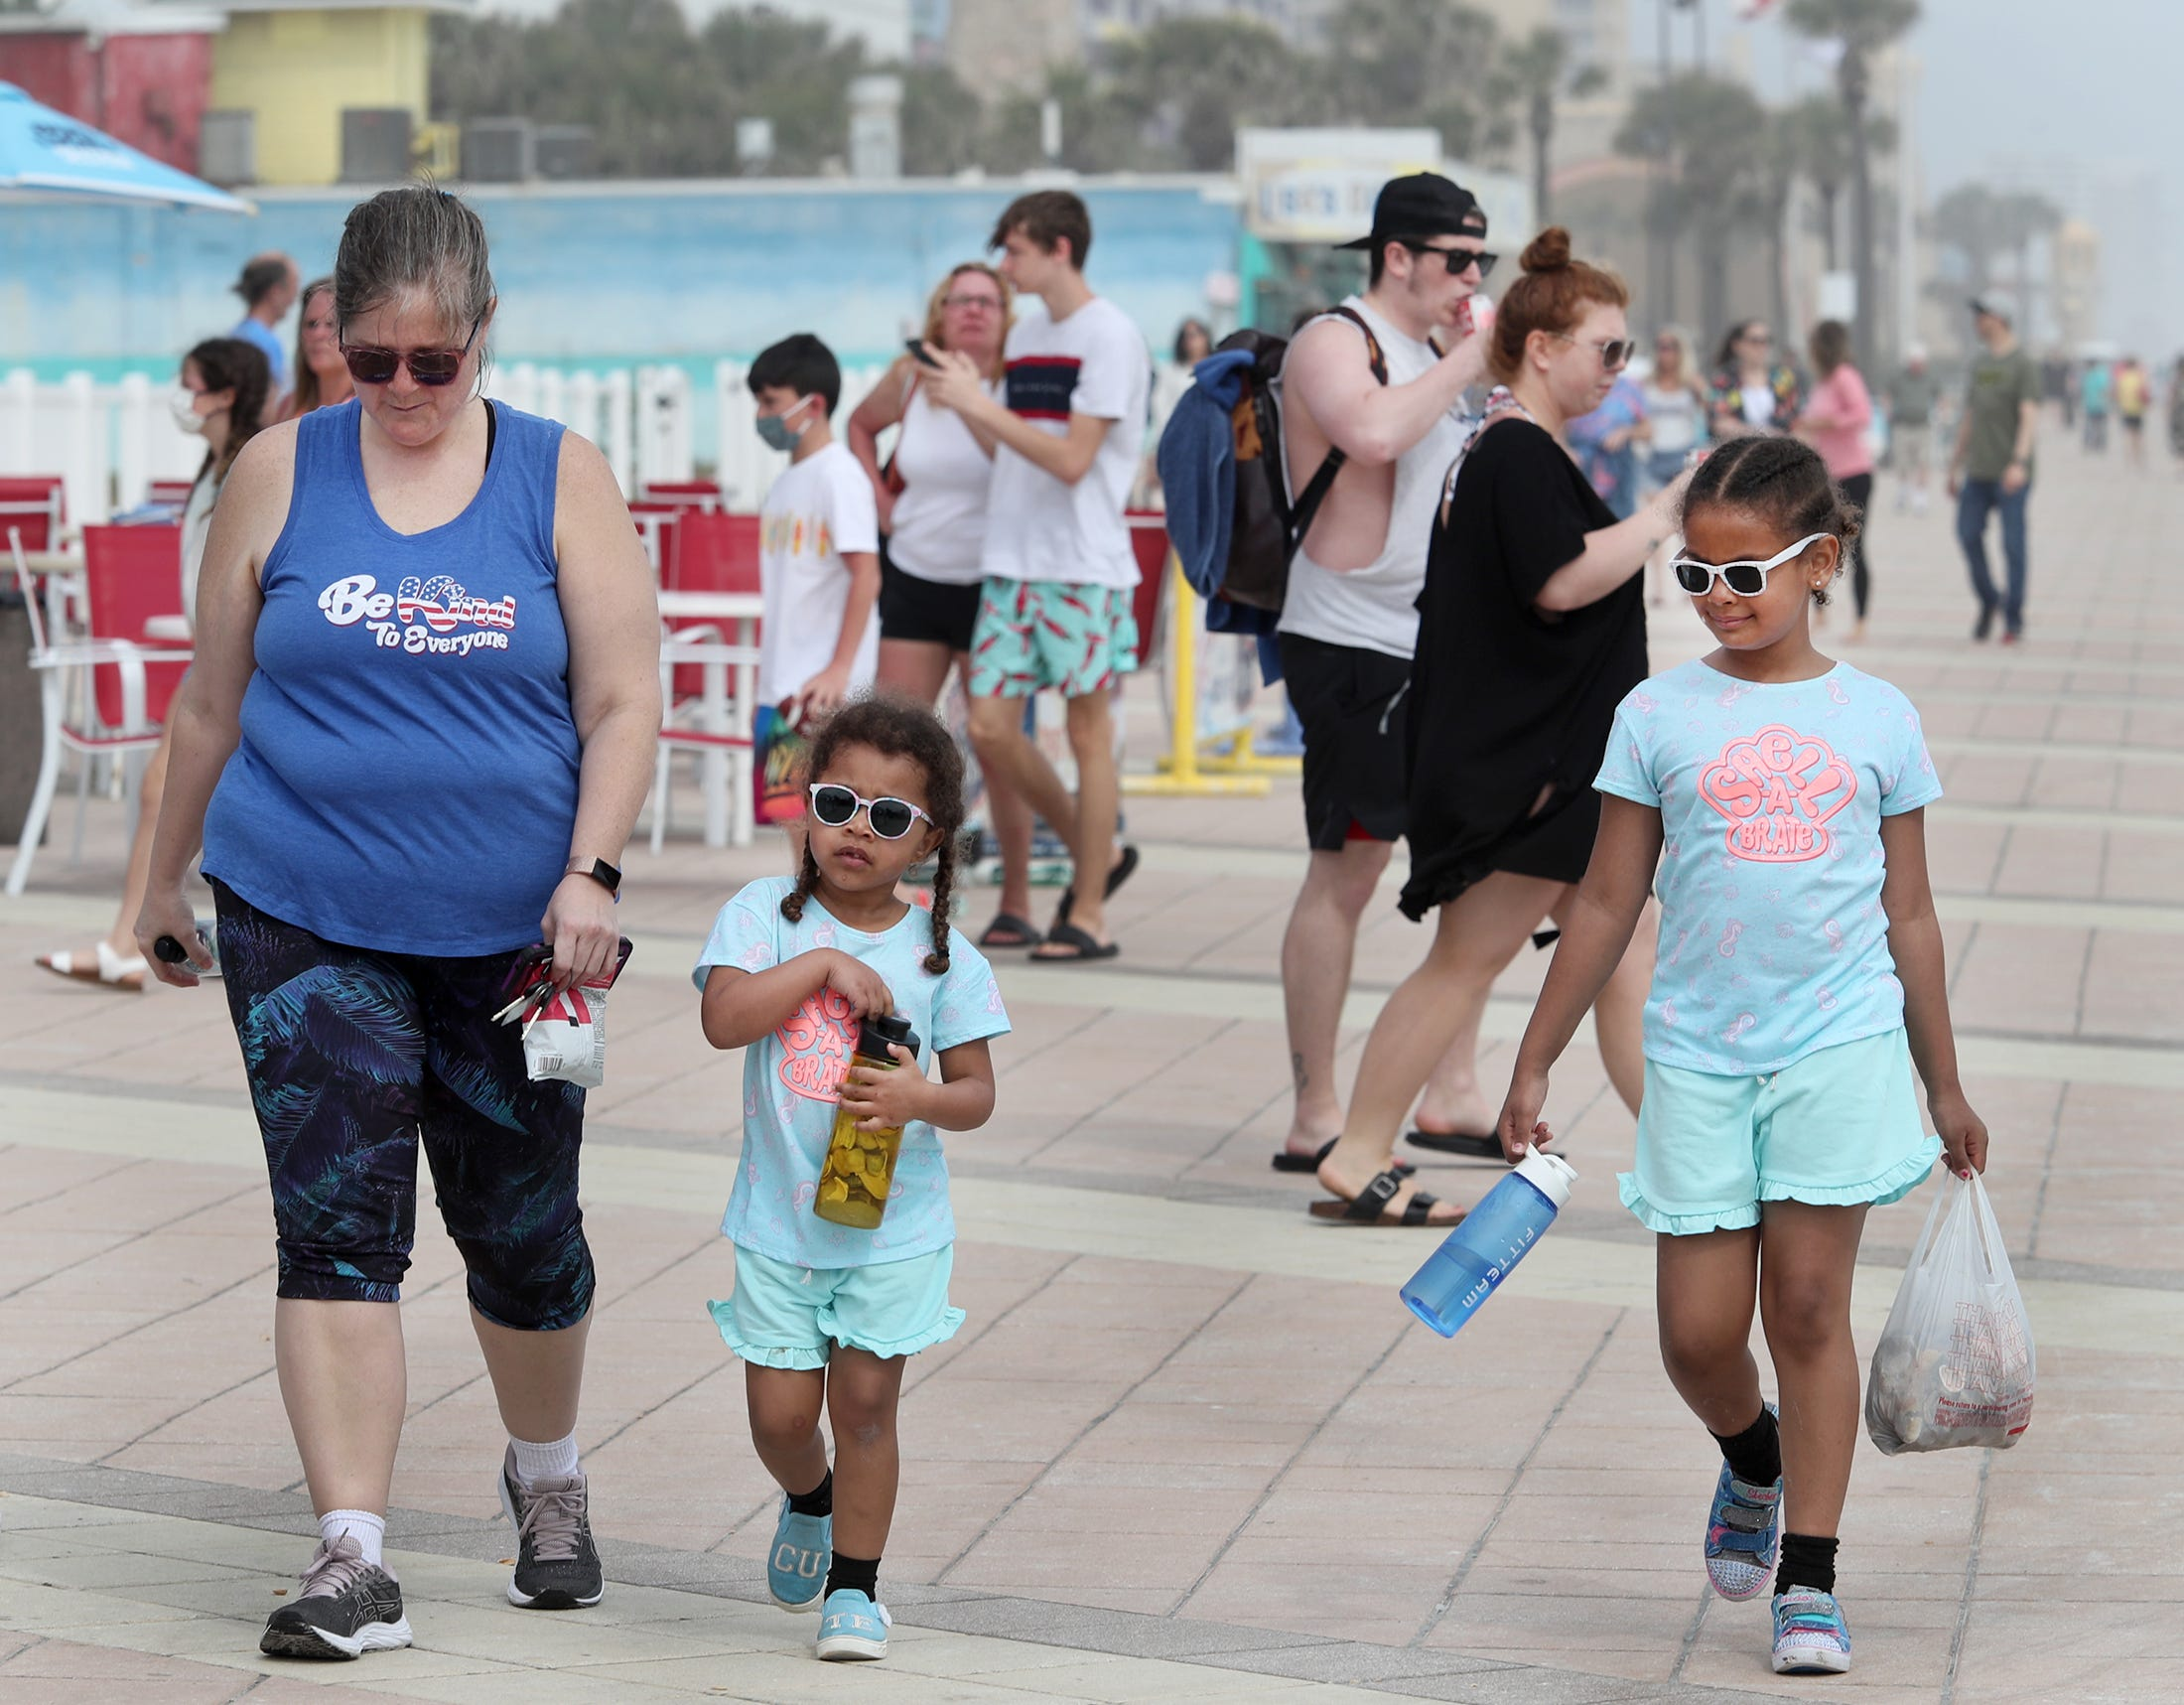 Spring break party? After COVID-19 school changes, families, not students, pack Daytona's beaches